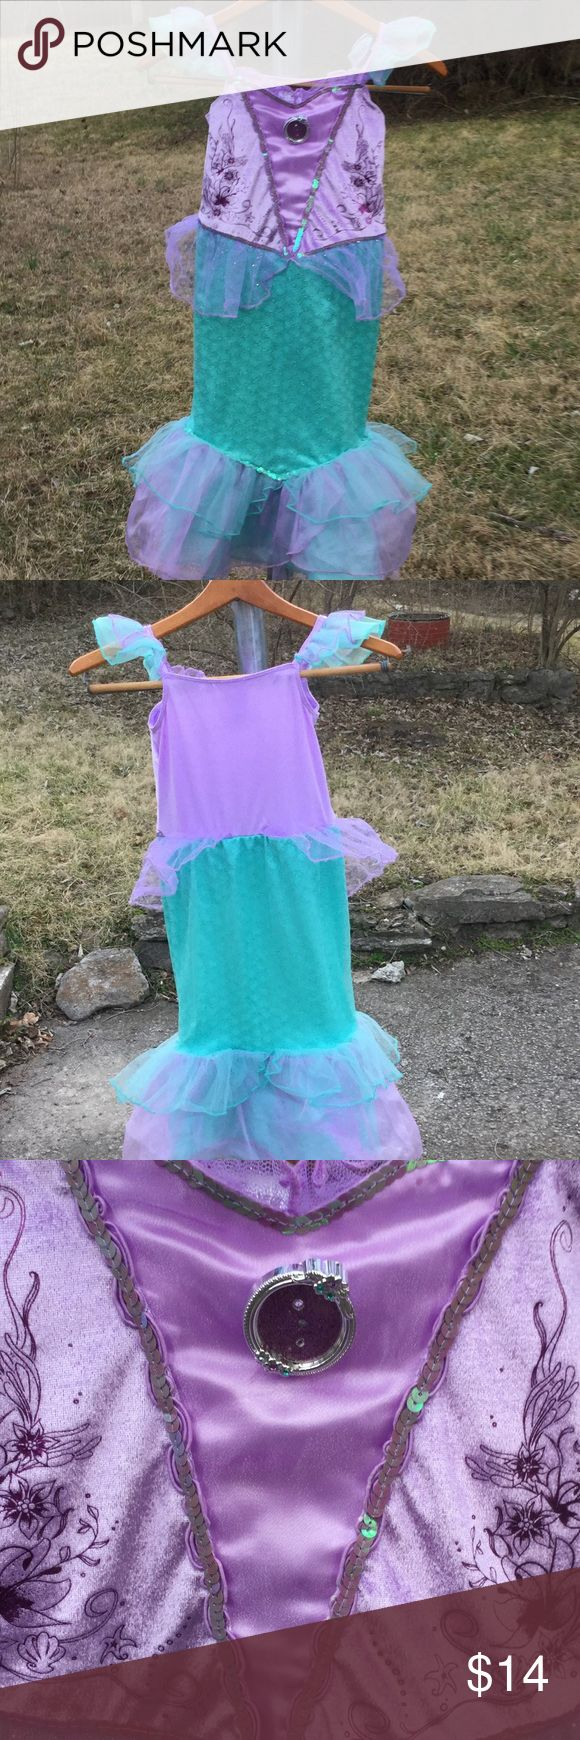 Disney Store mermaid costume . Fully lined with a very soft fabric . Many layers of petticoats. Sequence embellishment. Purple and aqua blue/ green. Disney Store Costumes Halloween